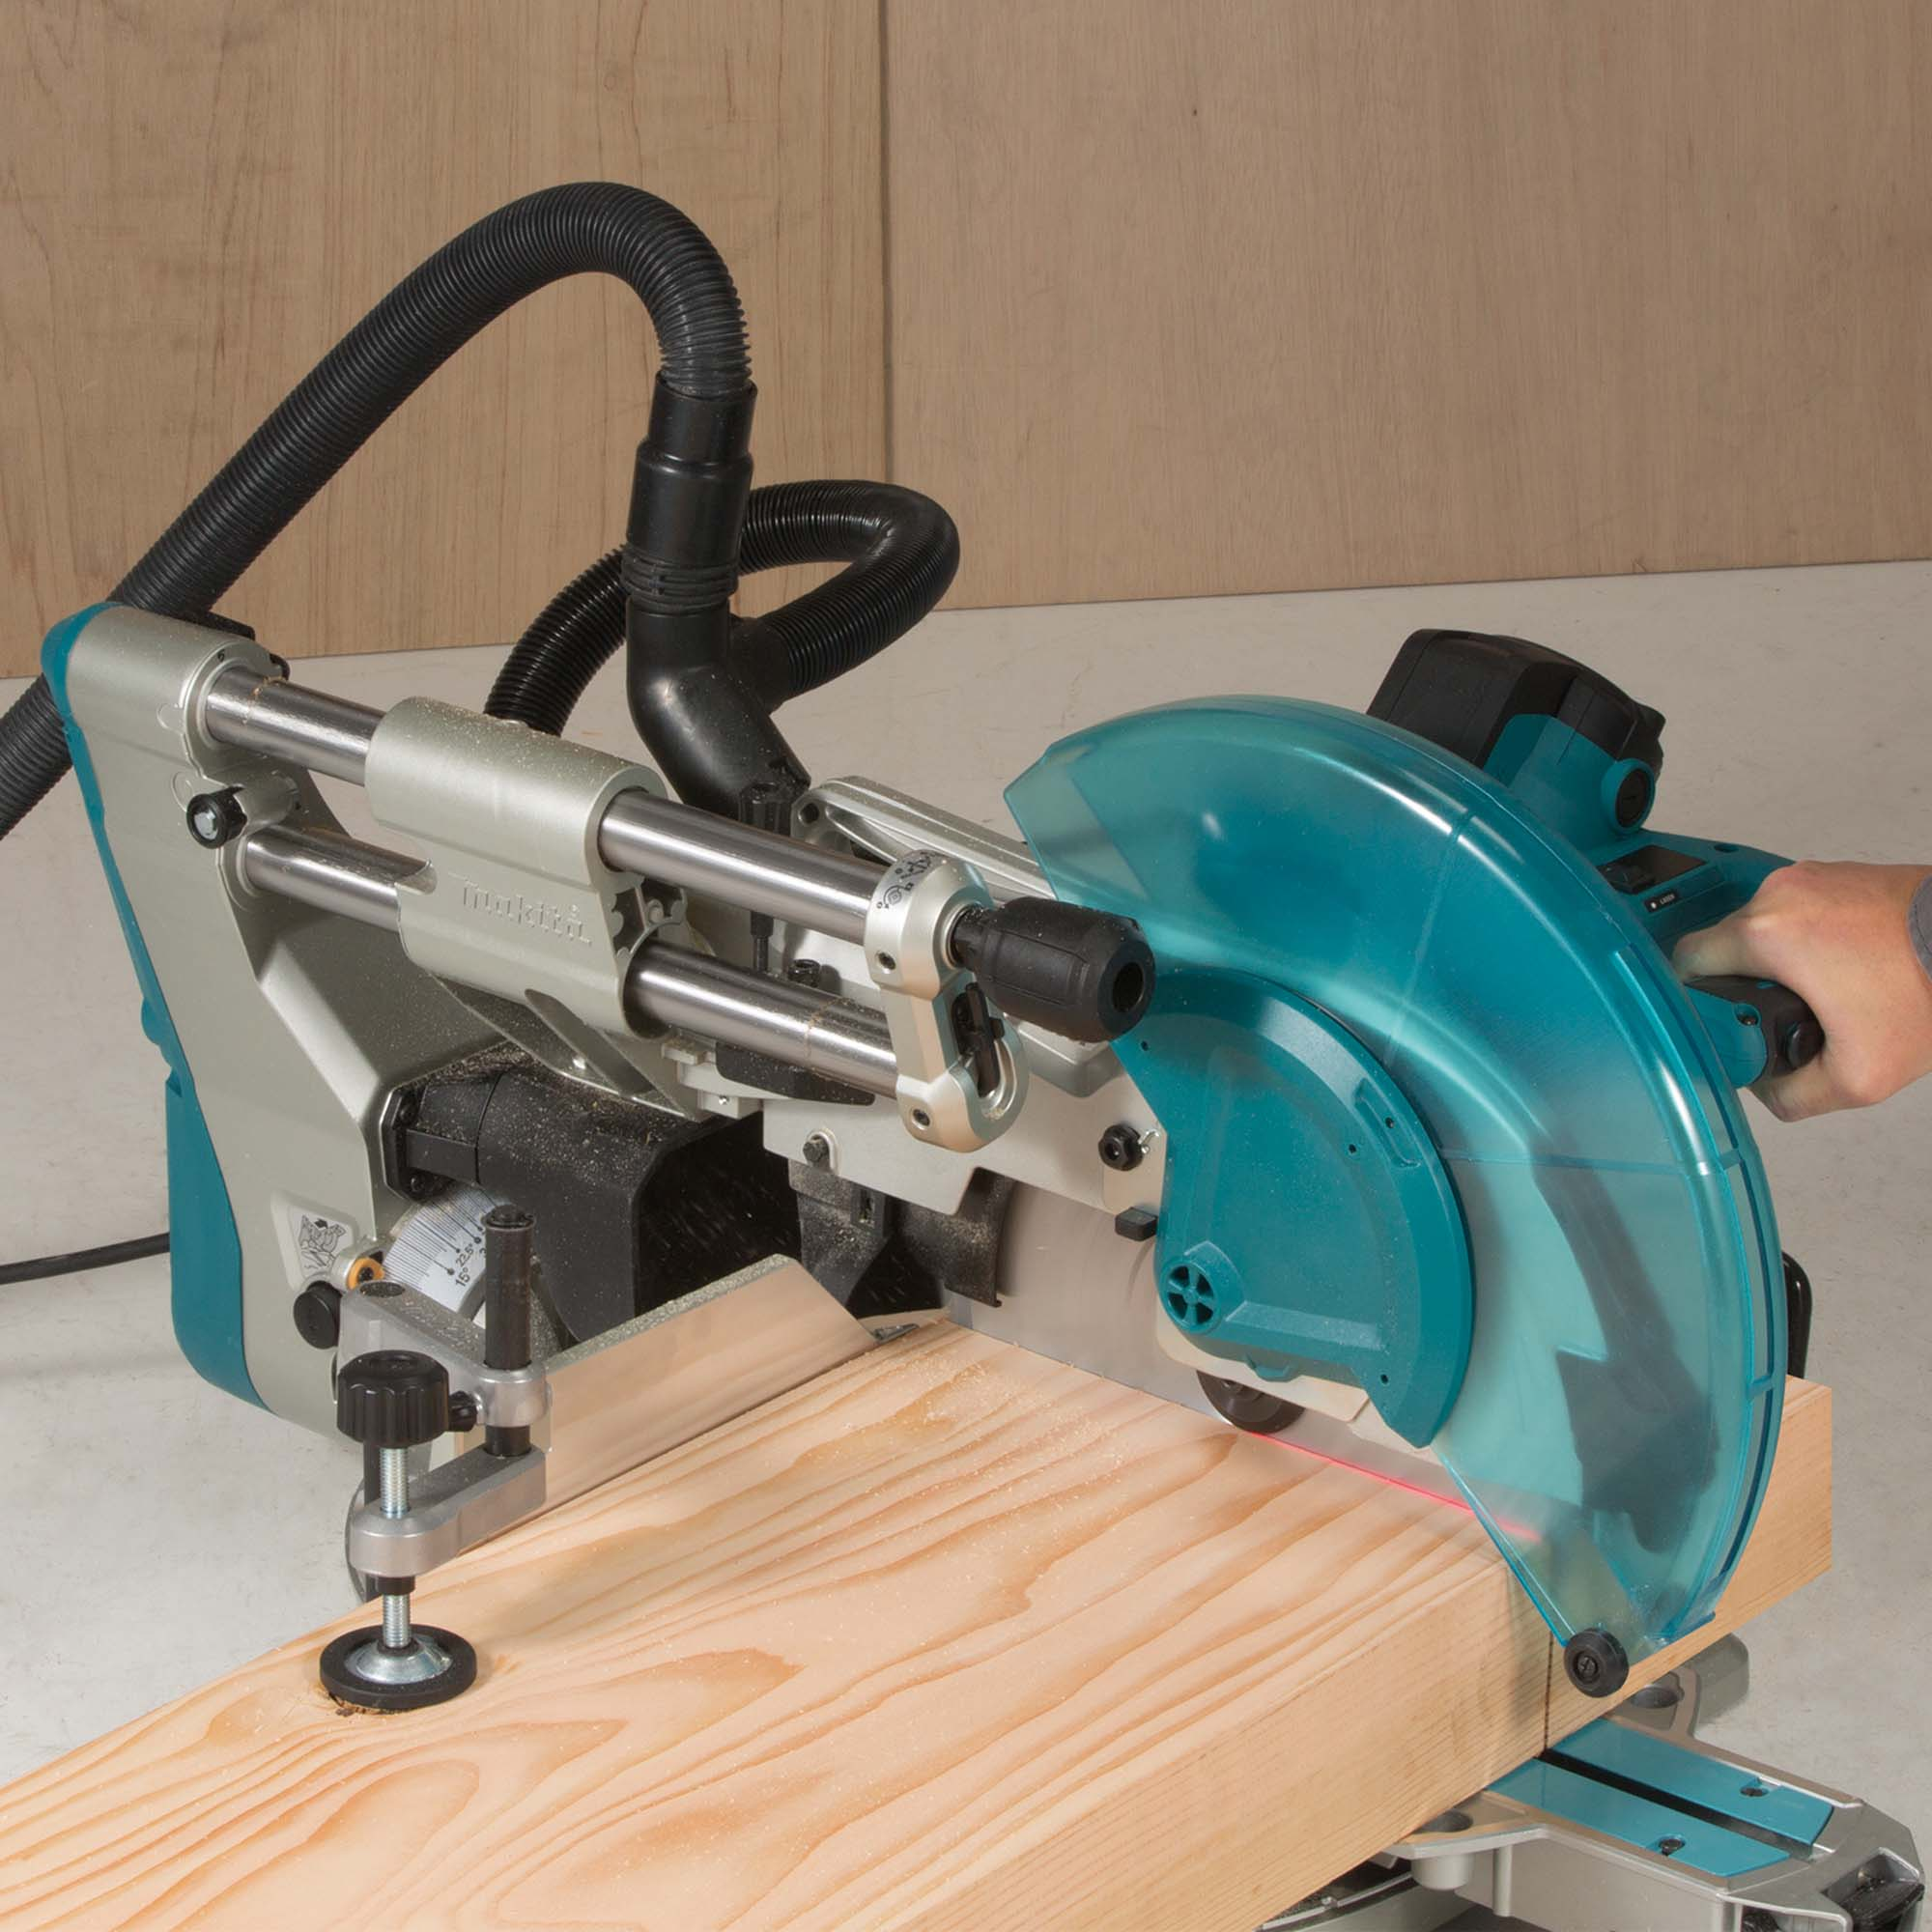 NEW 305MM SLIDE COMPOUND MITRE SAW JOINS THE MAKITA RANGE OF SAWS